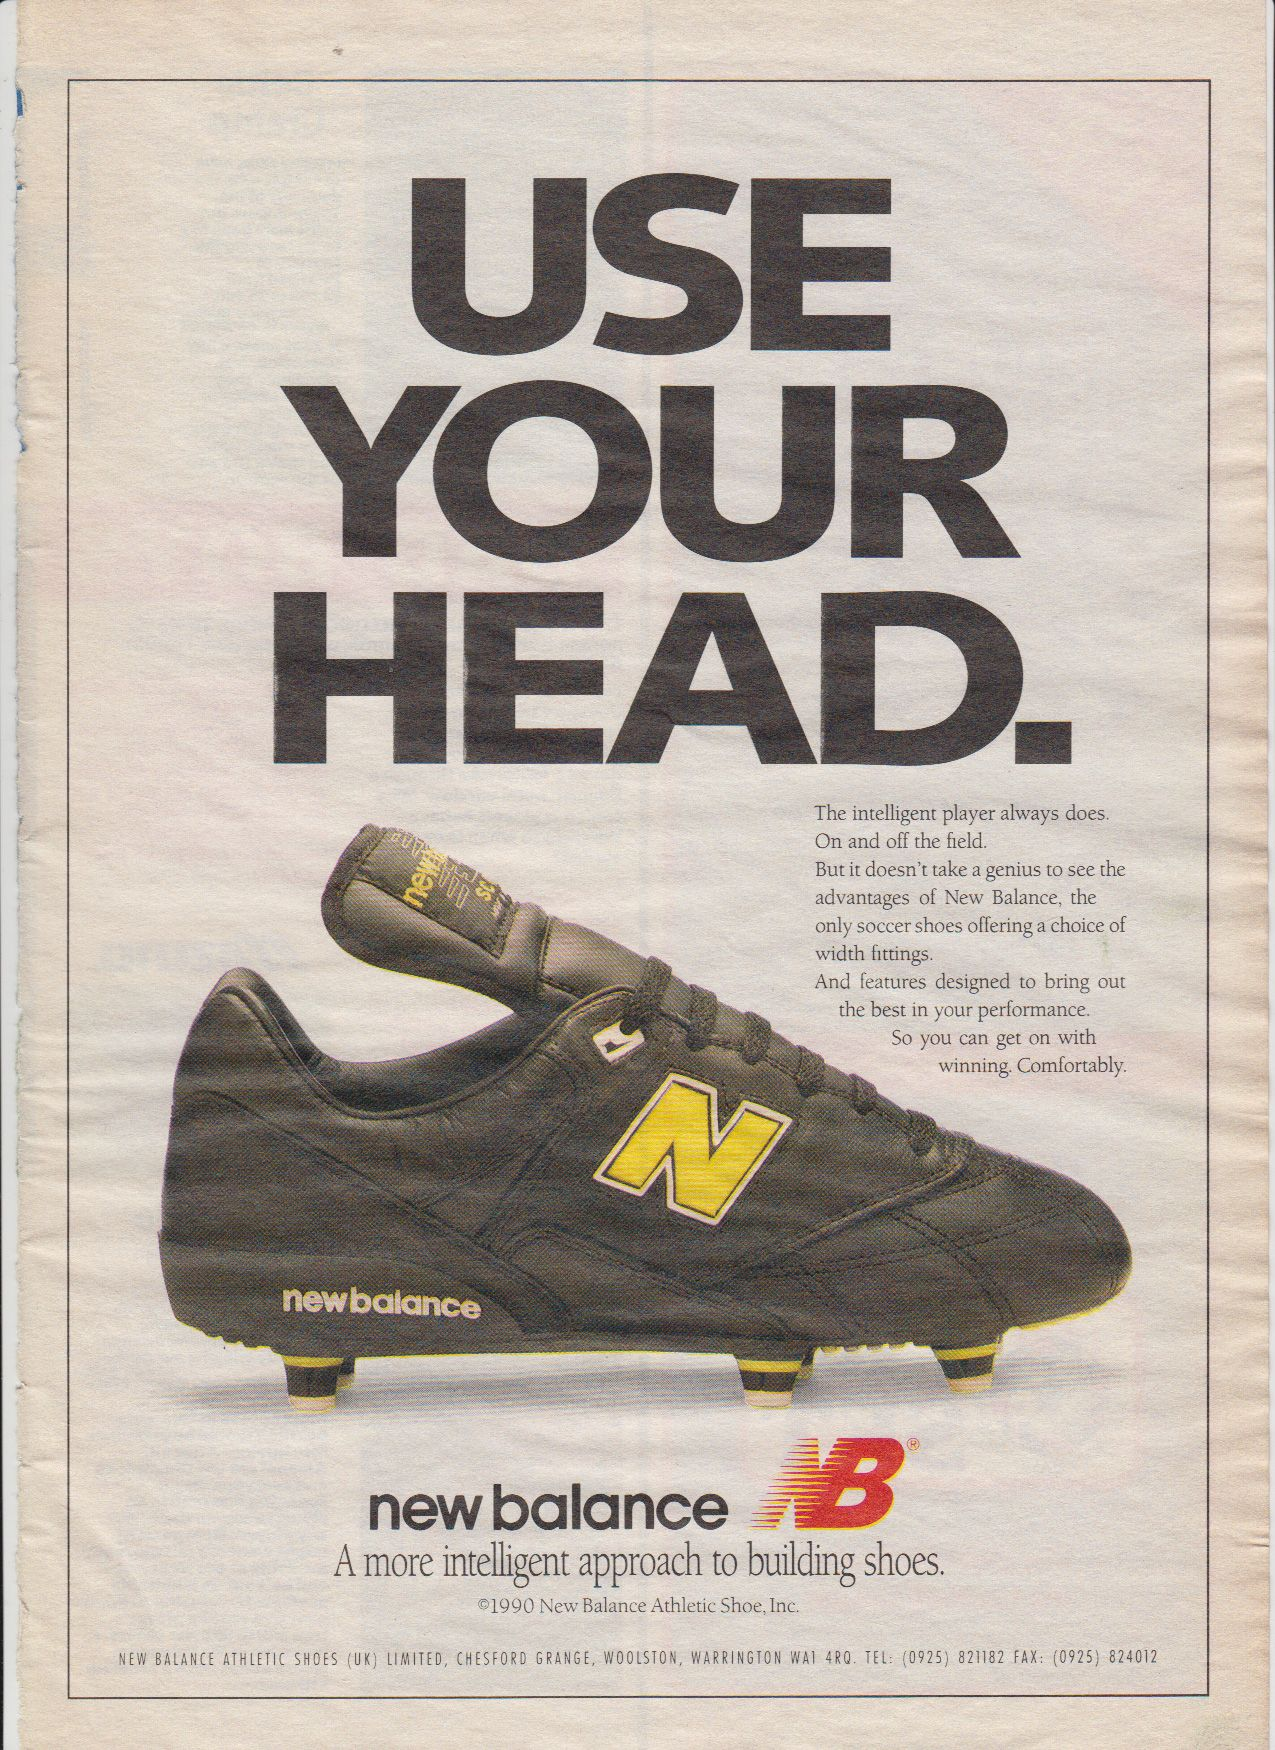 New Balance Soccer 1990 New Balance New Balance Trainers Football Boots